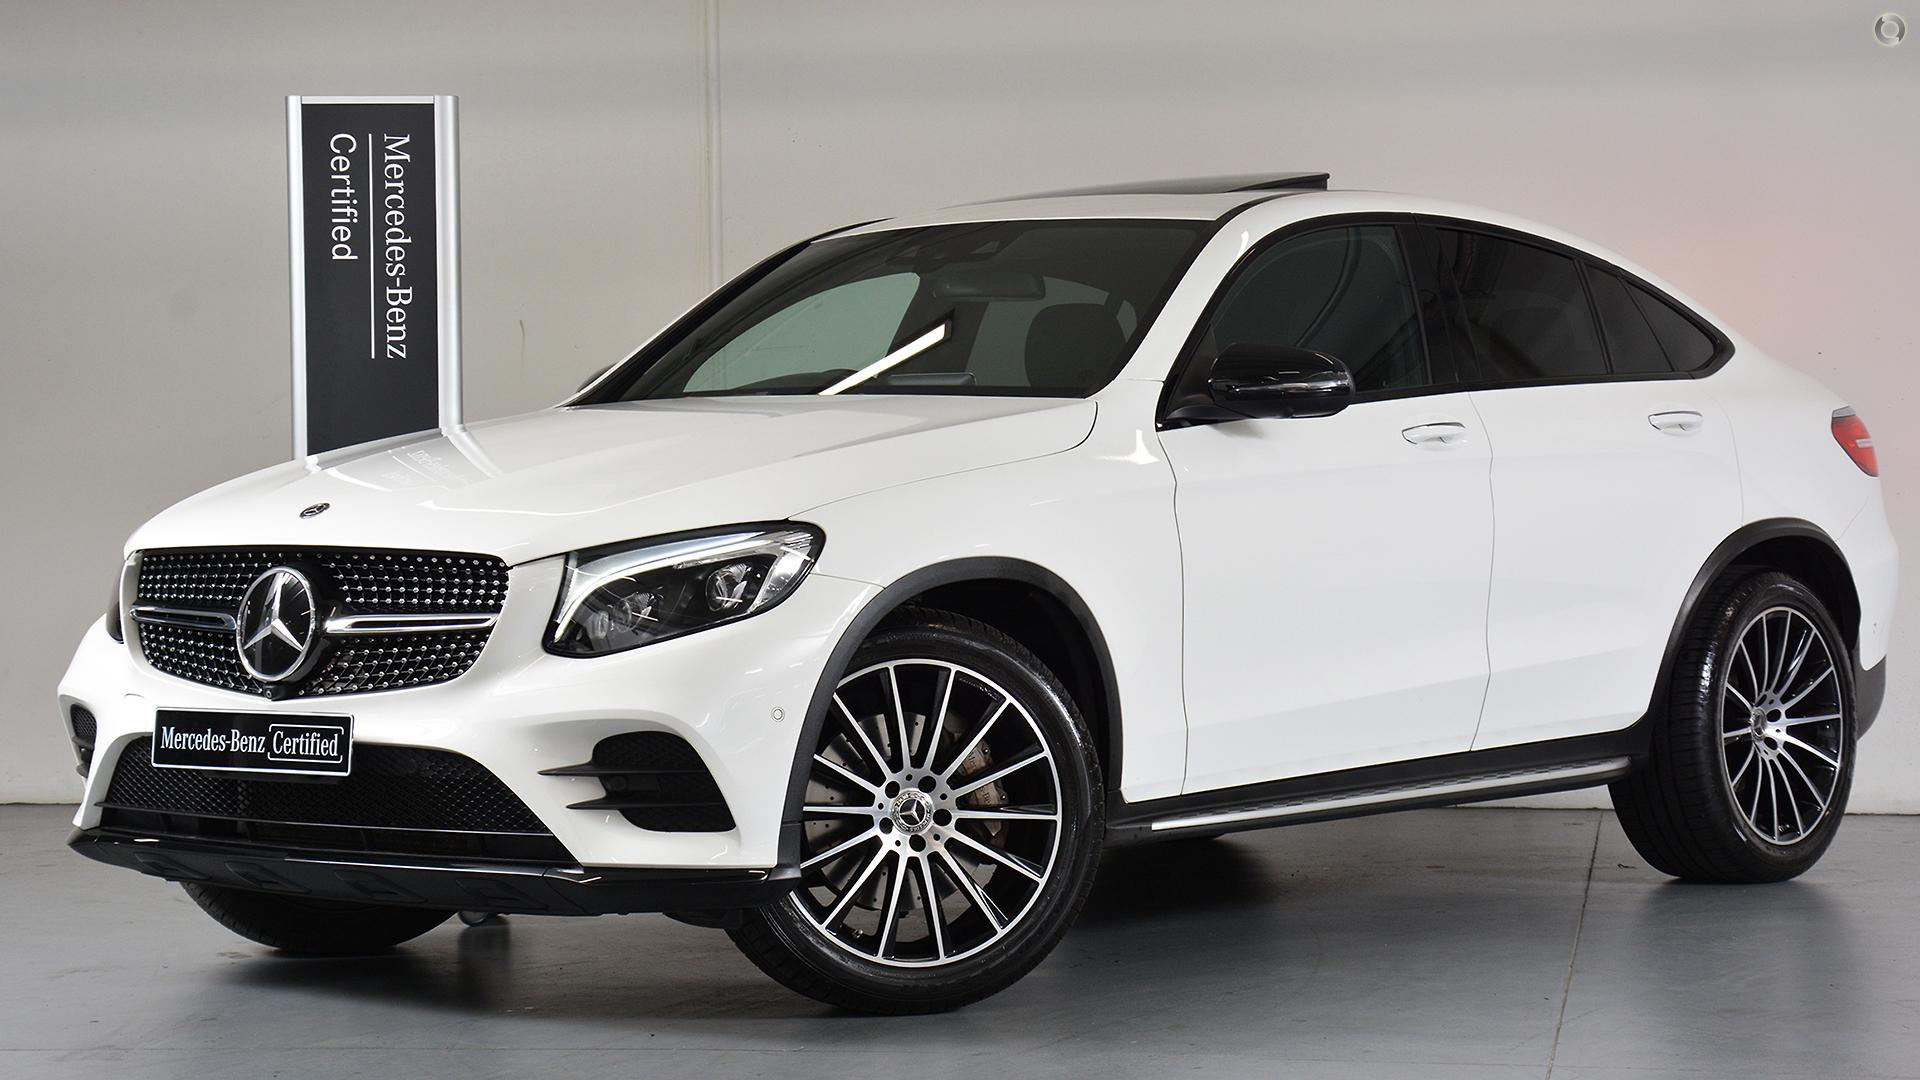 2017 Mercedes-Benz GLC 250 Coupe